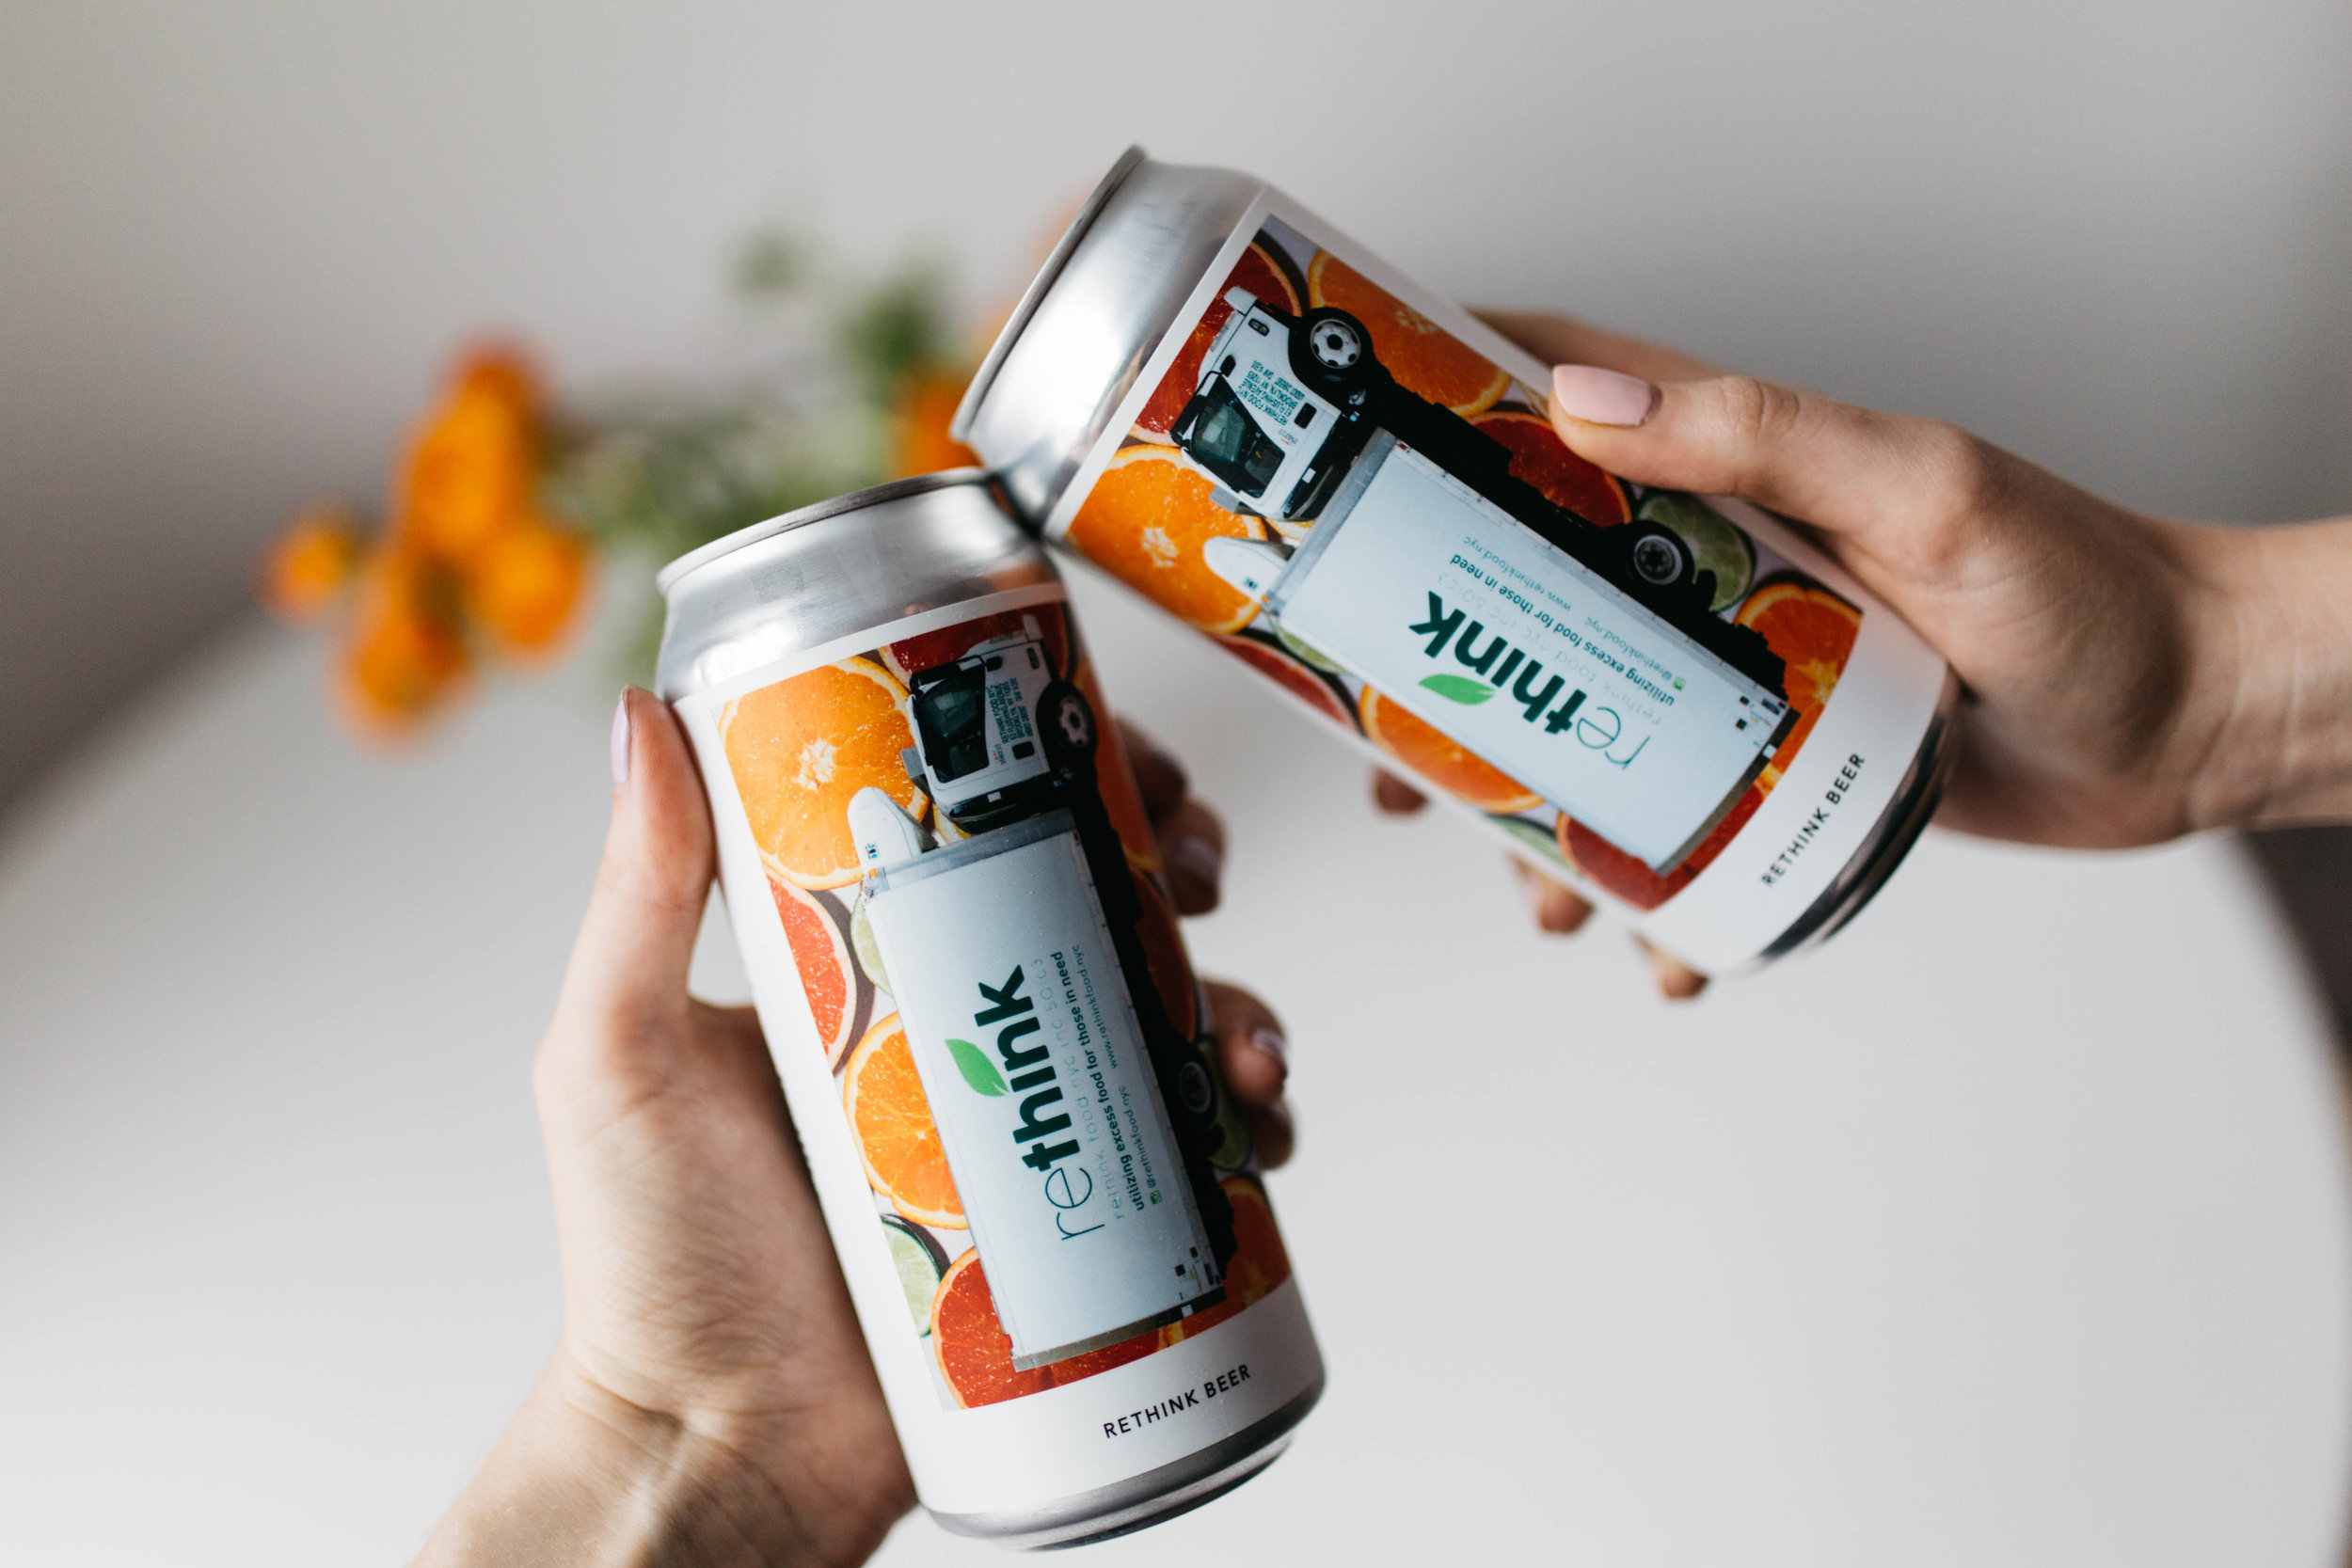 RETHINK X EVIL TWIN - Rethink, Evil Twin Brewing NYC, and the Nomad Bar to Release Limited-Edition Beer from Repurposed Ingredients